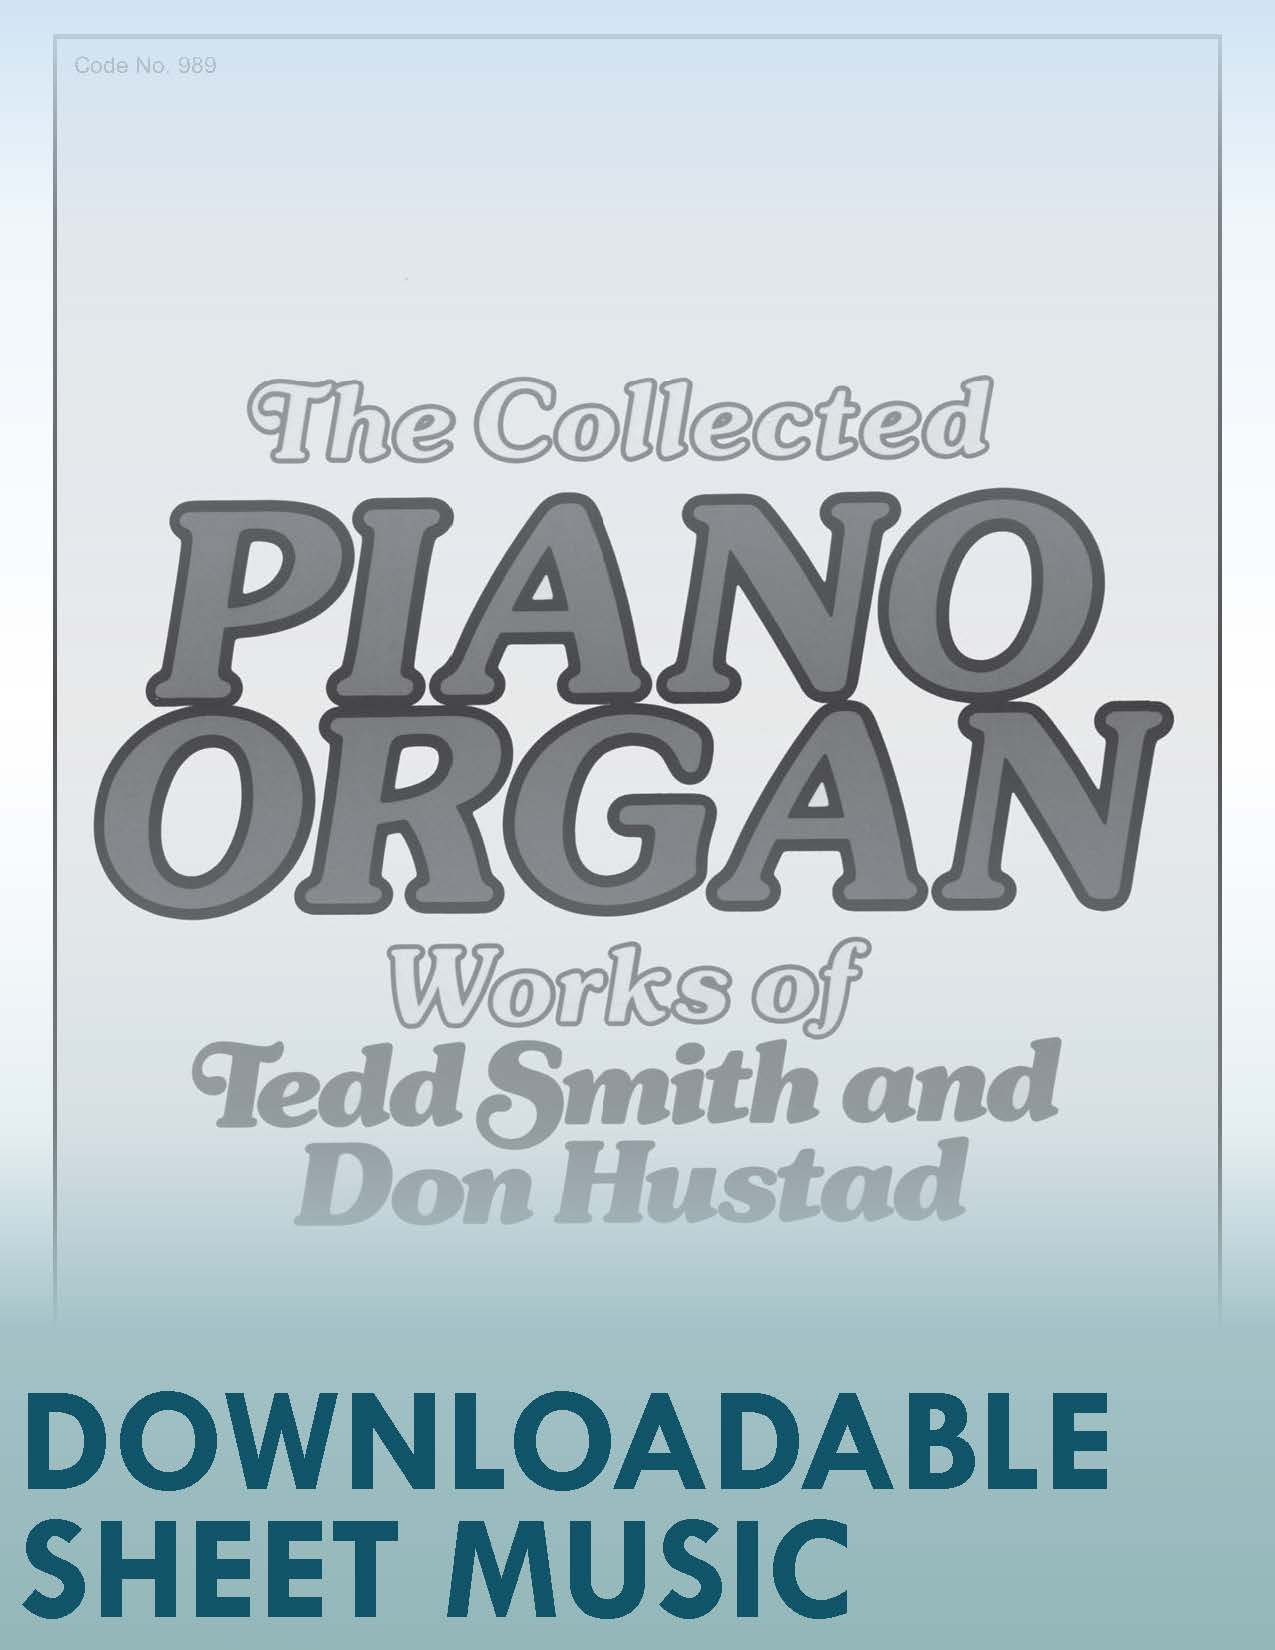 The Collected Piano/Organ Works of Tedd Smith and Don Hustad (Digital Download)